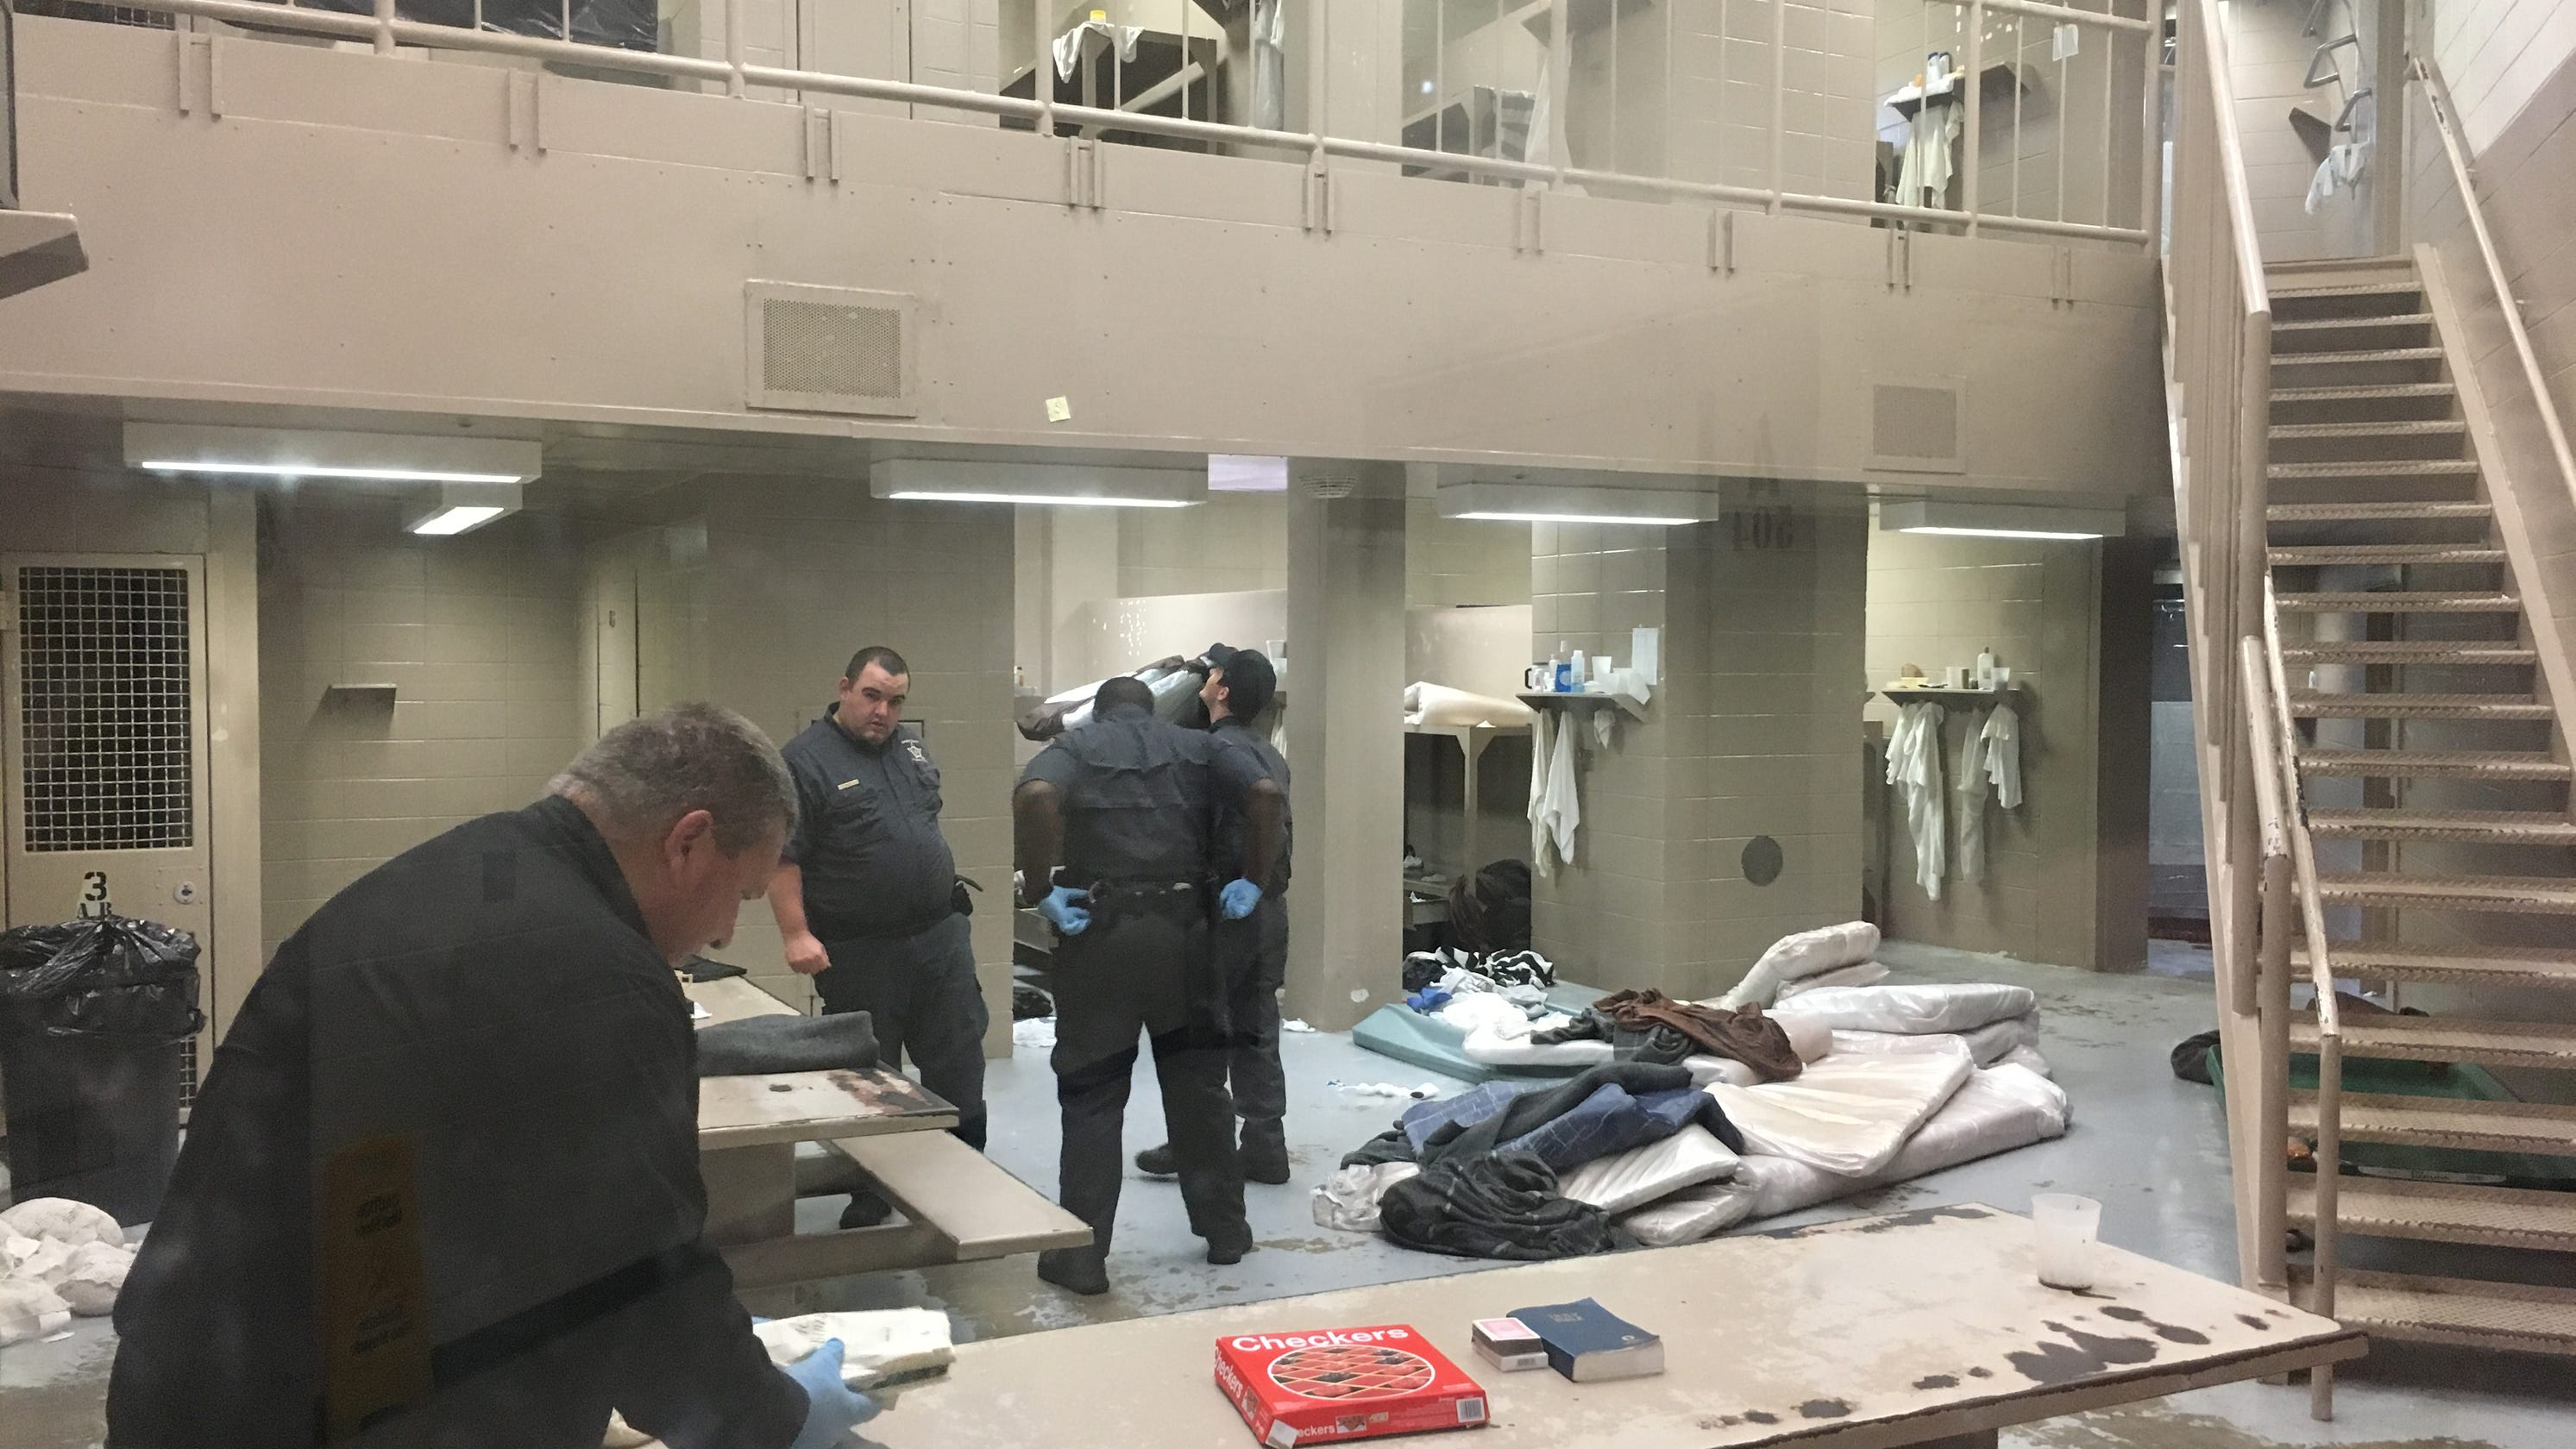 Predawn shakedown at Autauga Metro Jail nets unusual contraband